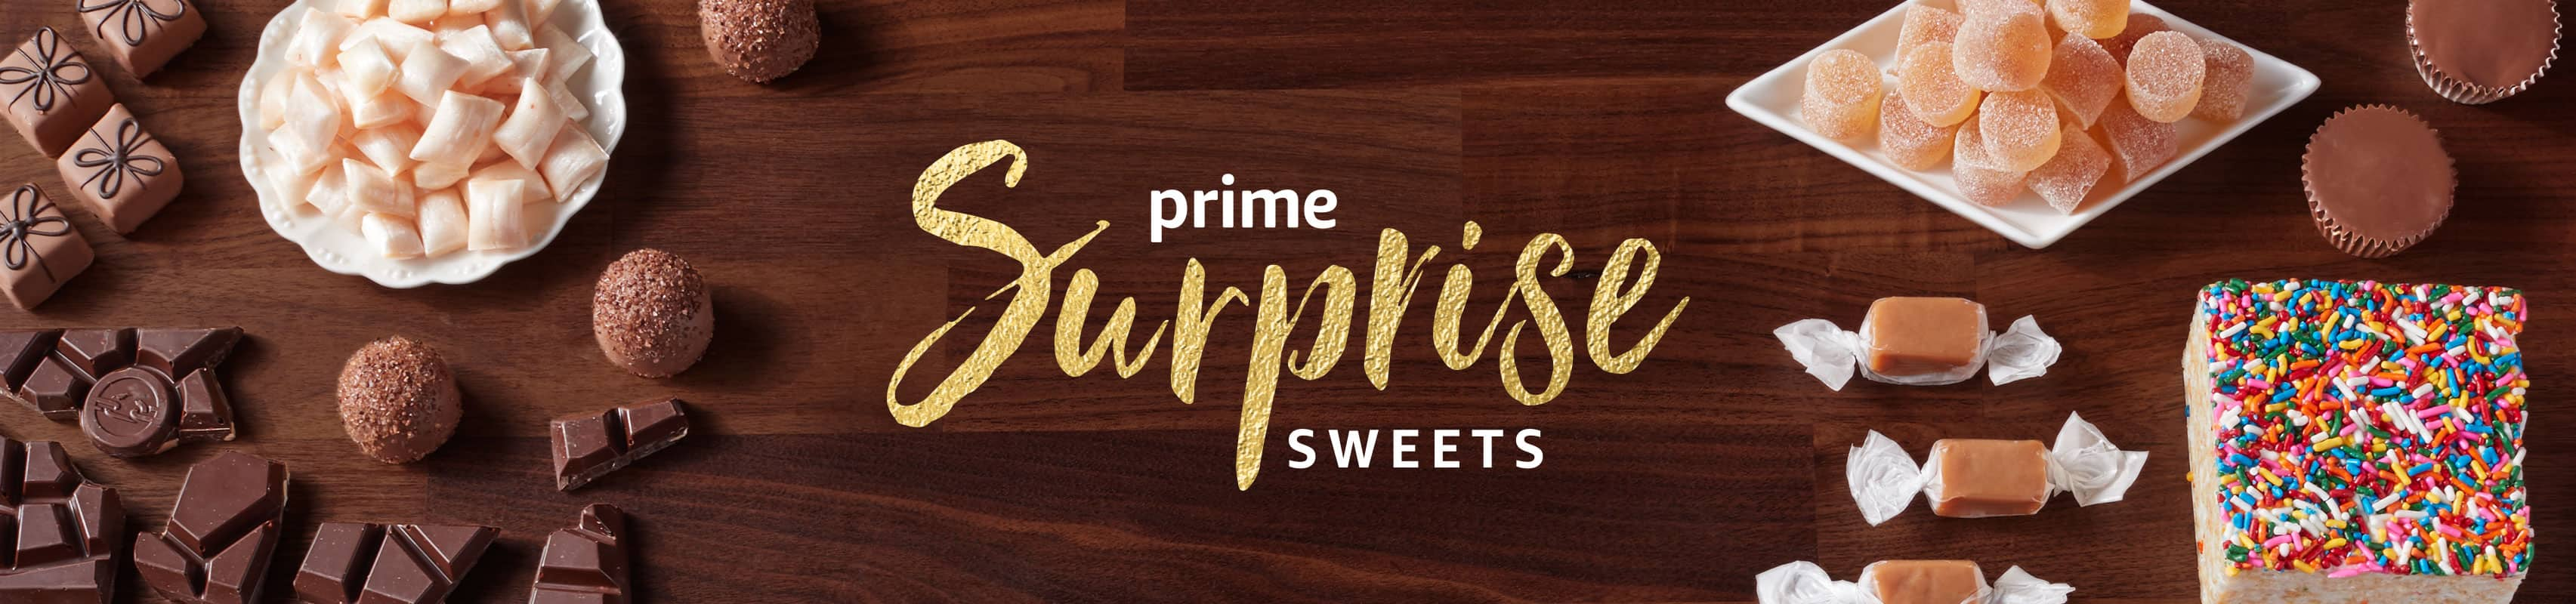 Prime Surprise Sweets Dash Button for $1 with code, YMMV